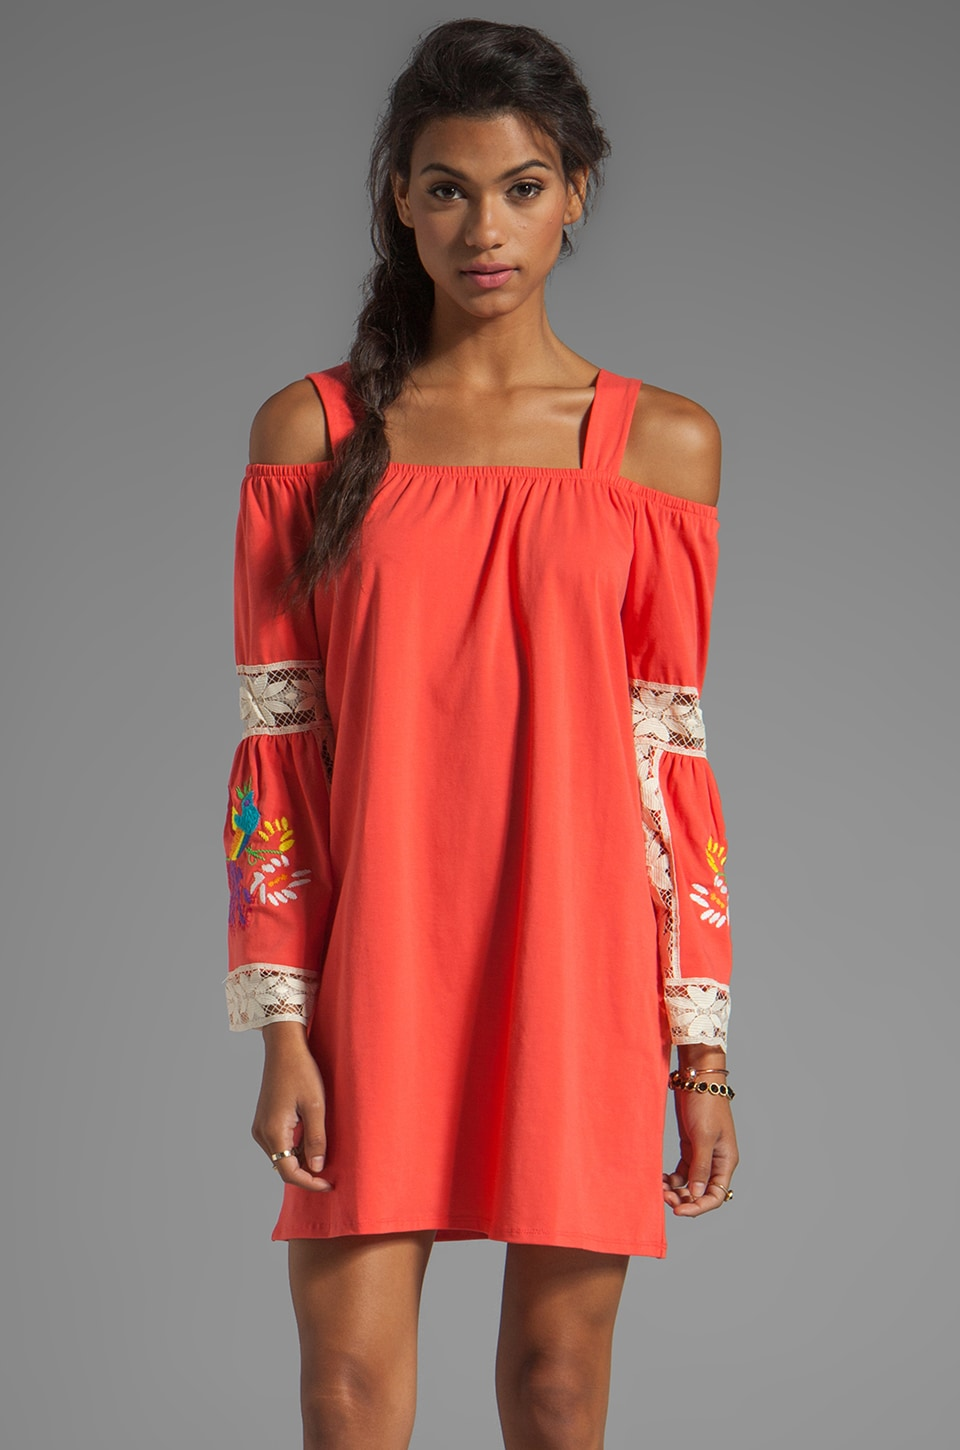 VAVA by Joy Han Jessi Embroidered Dress in Coral